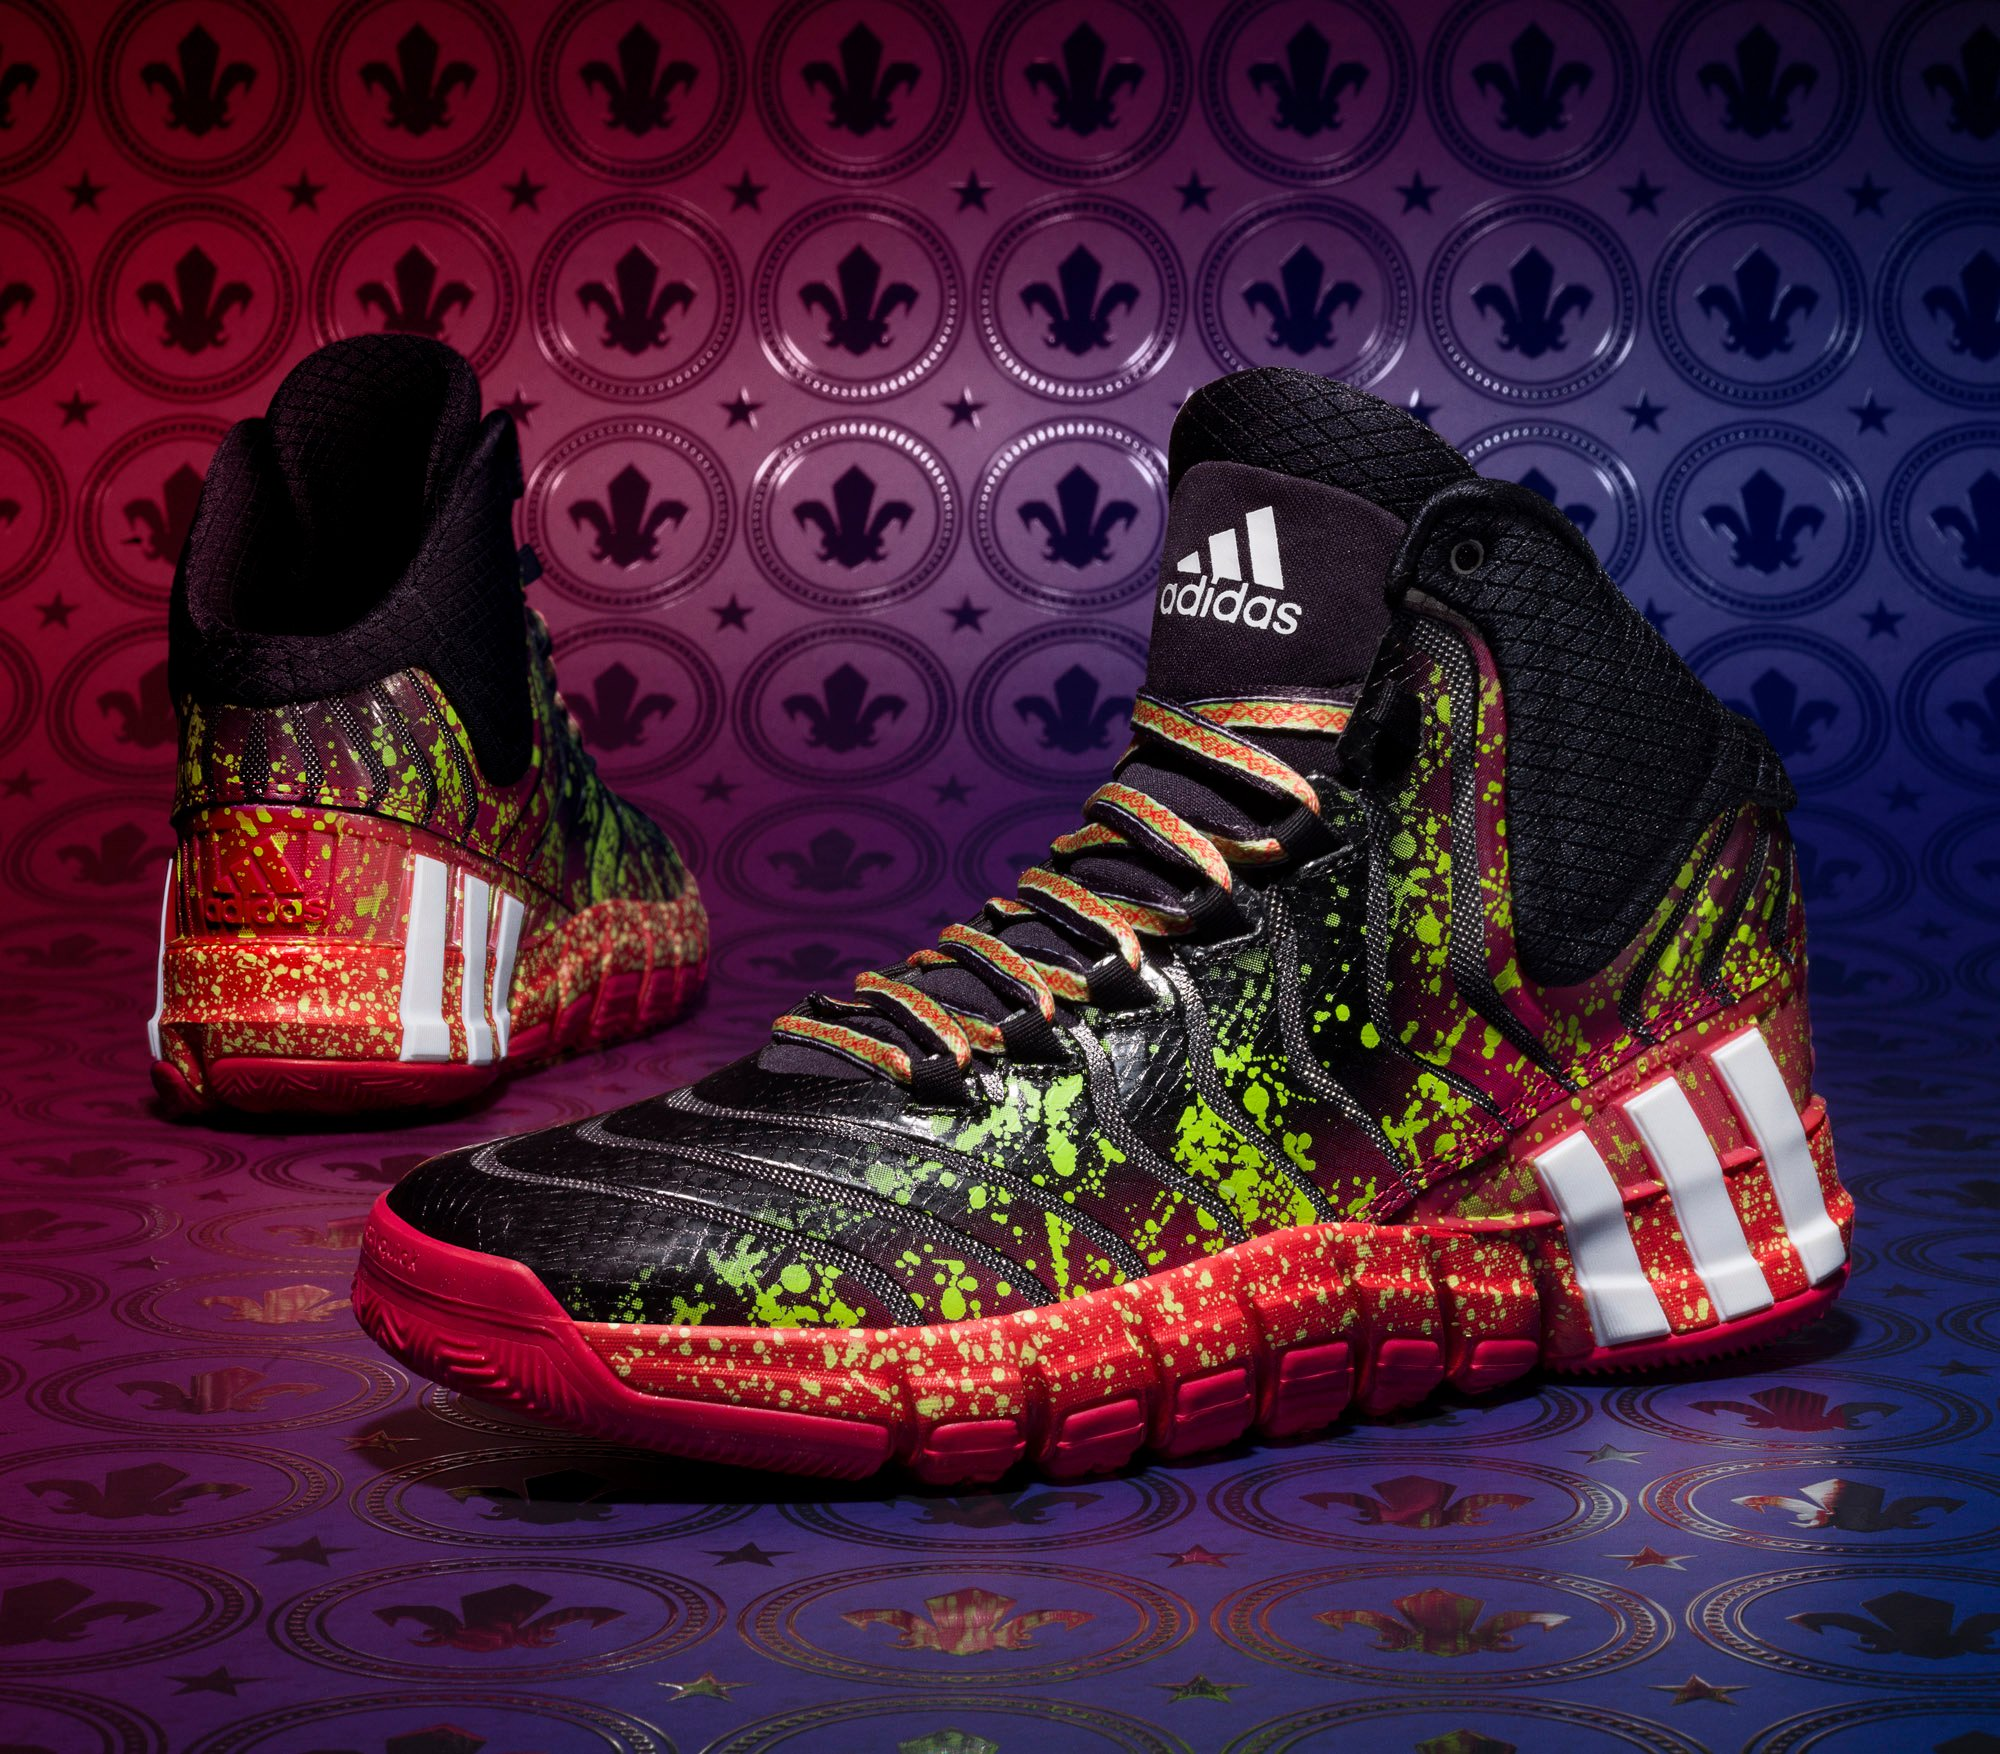 adidas-basketball-2014-nba-all-star-collection-6